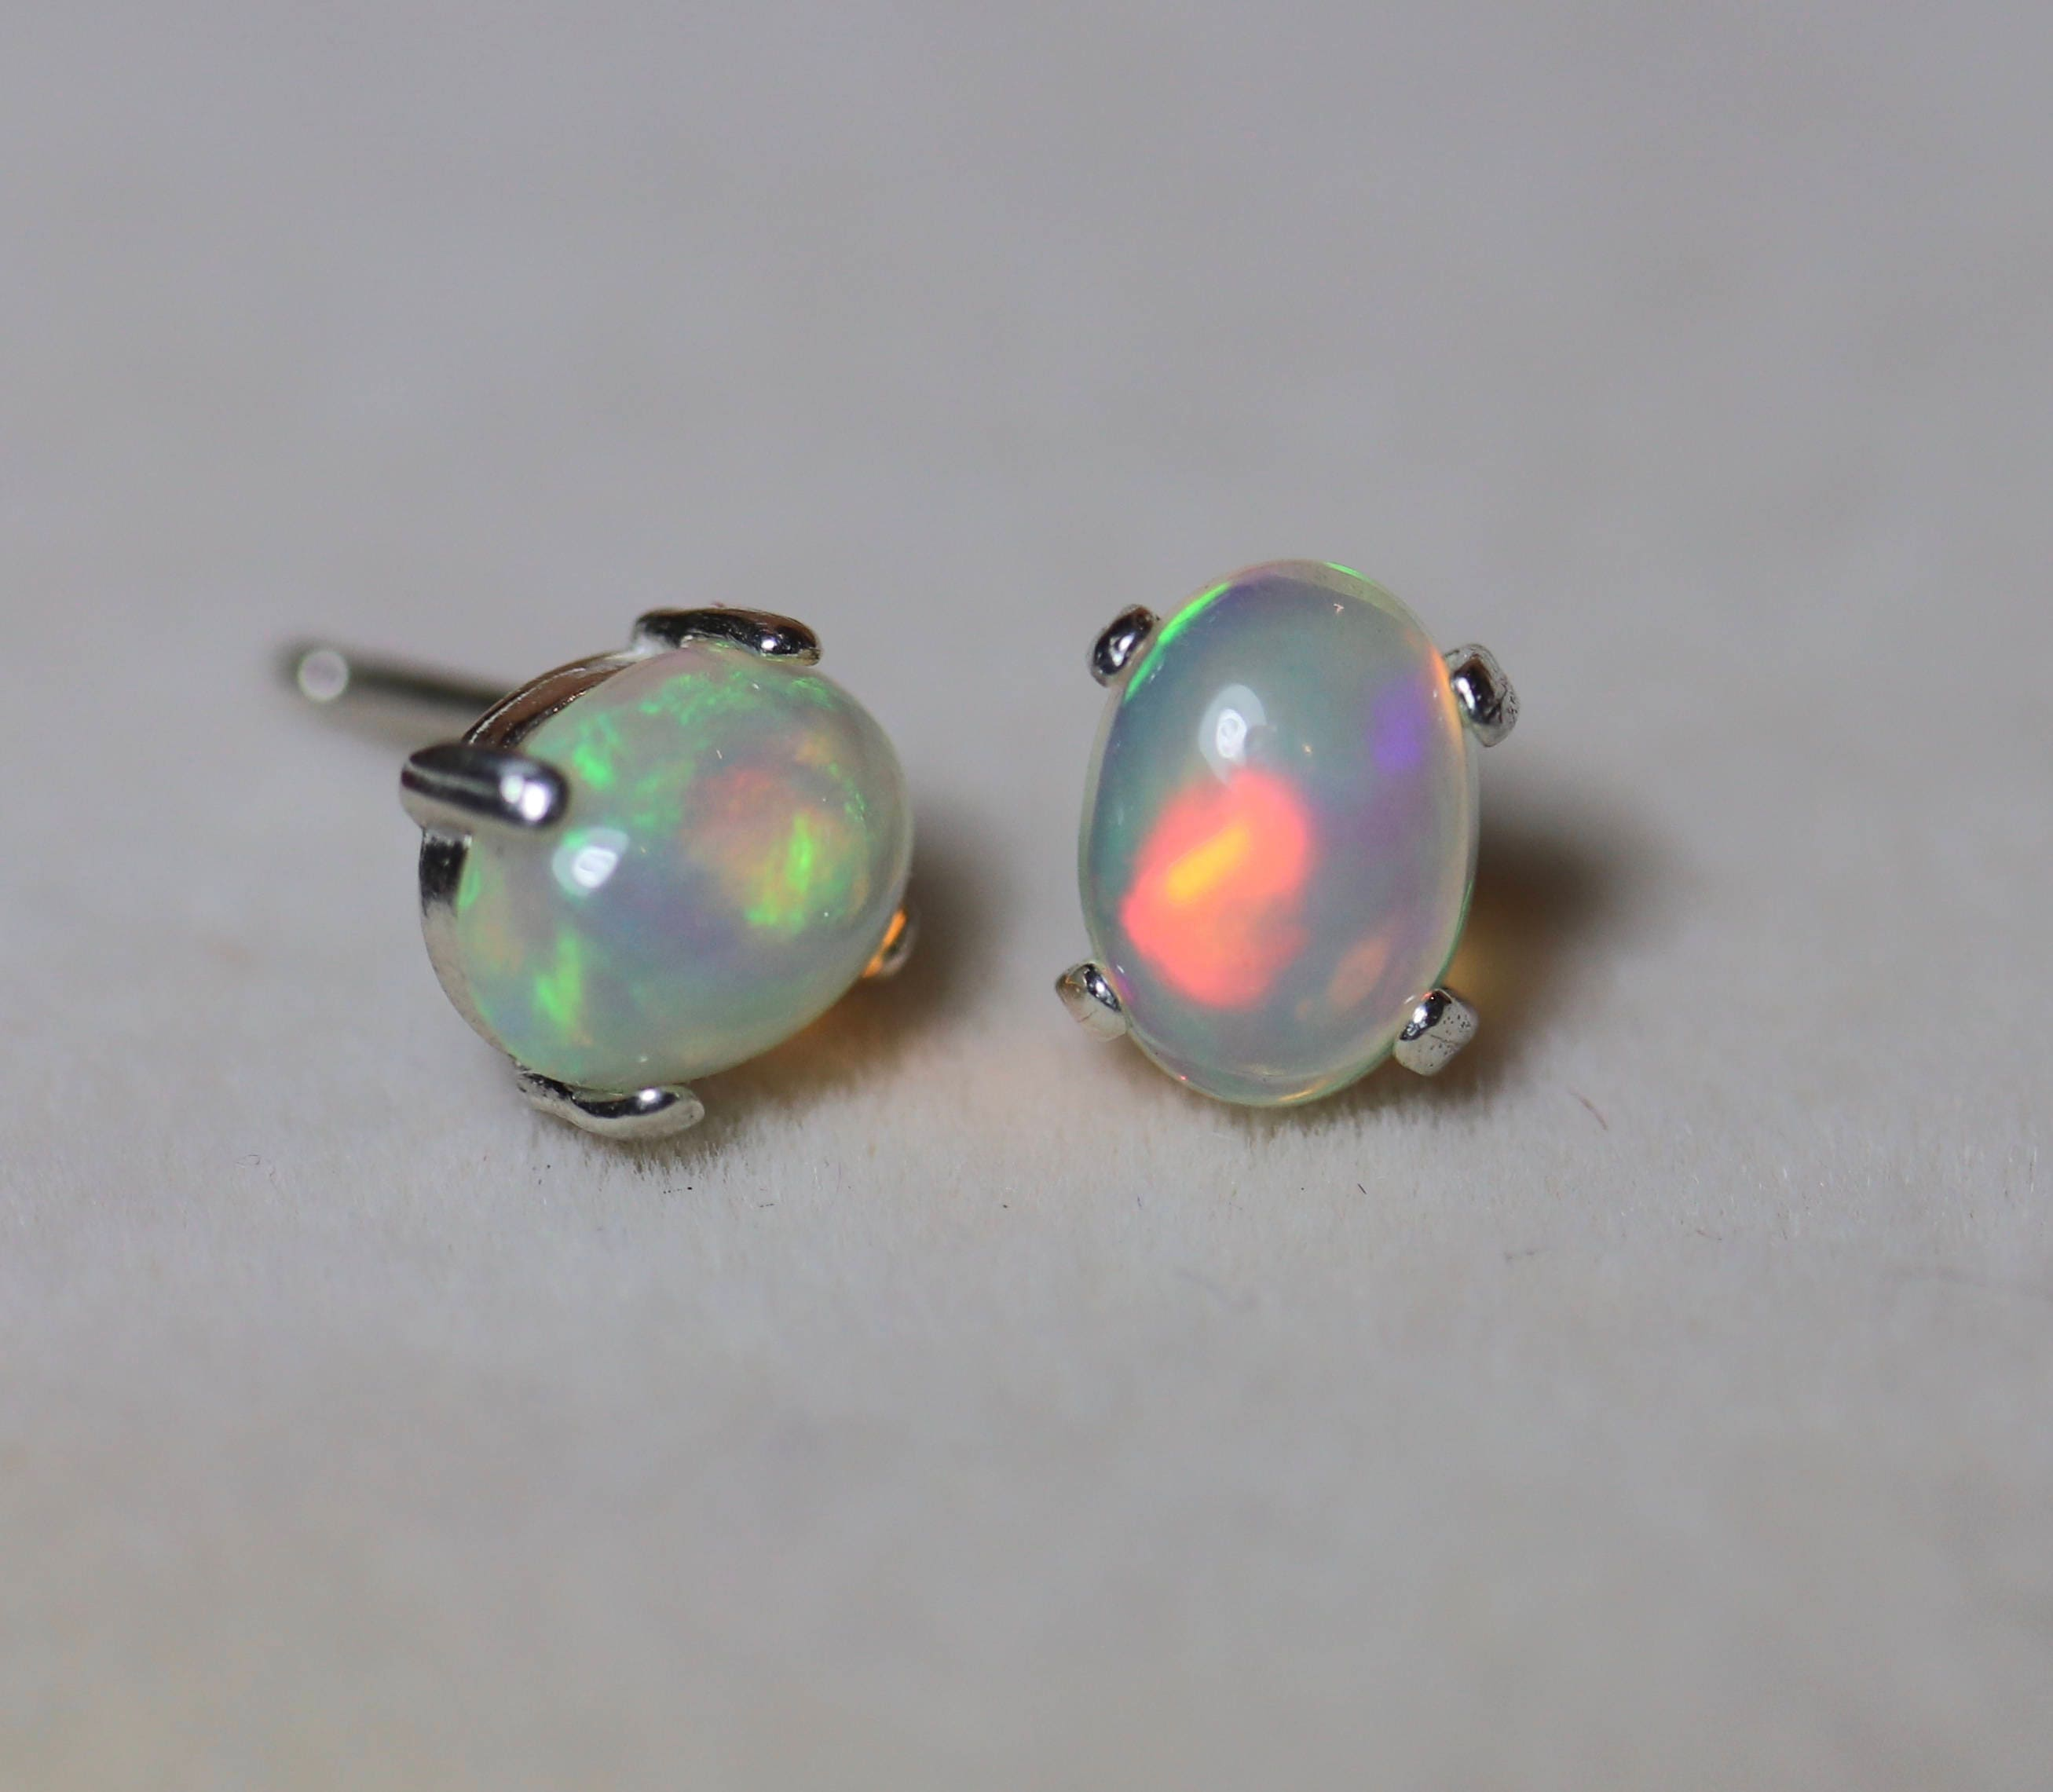 opal earring holiday earrings women girl dangle for fire product sterling silver friend real round jewelry store diamond imitation gift